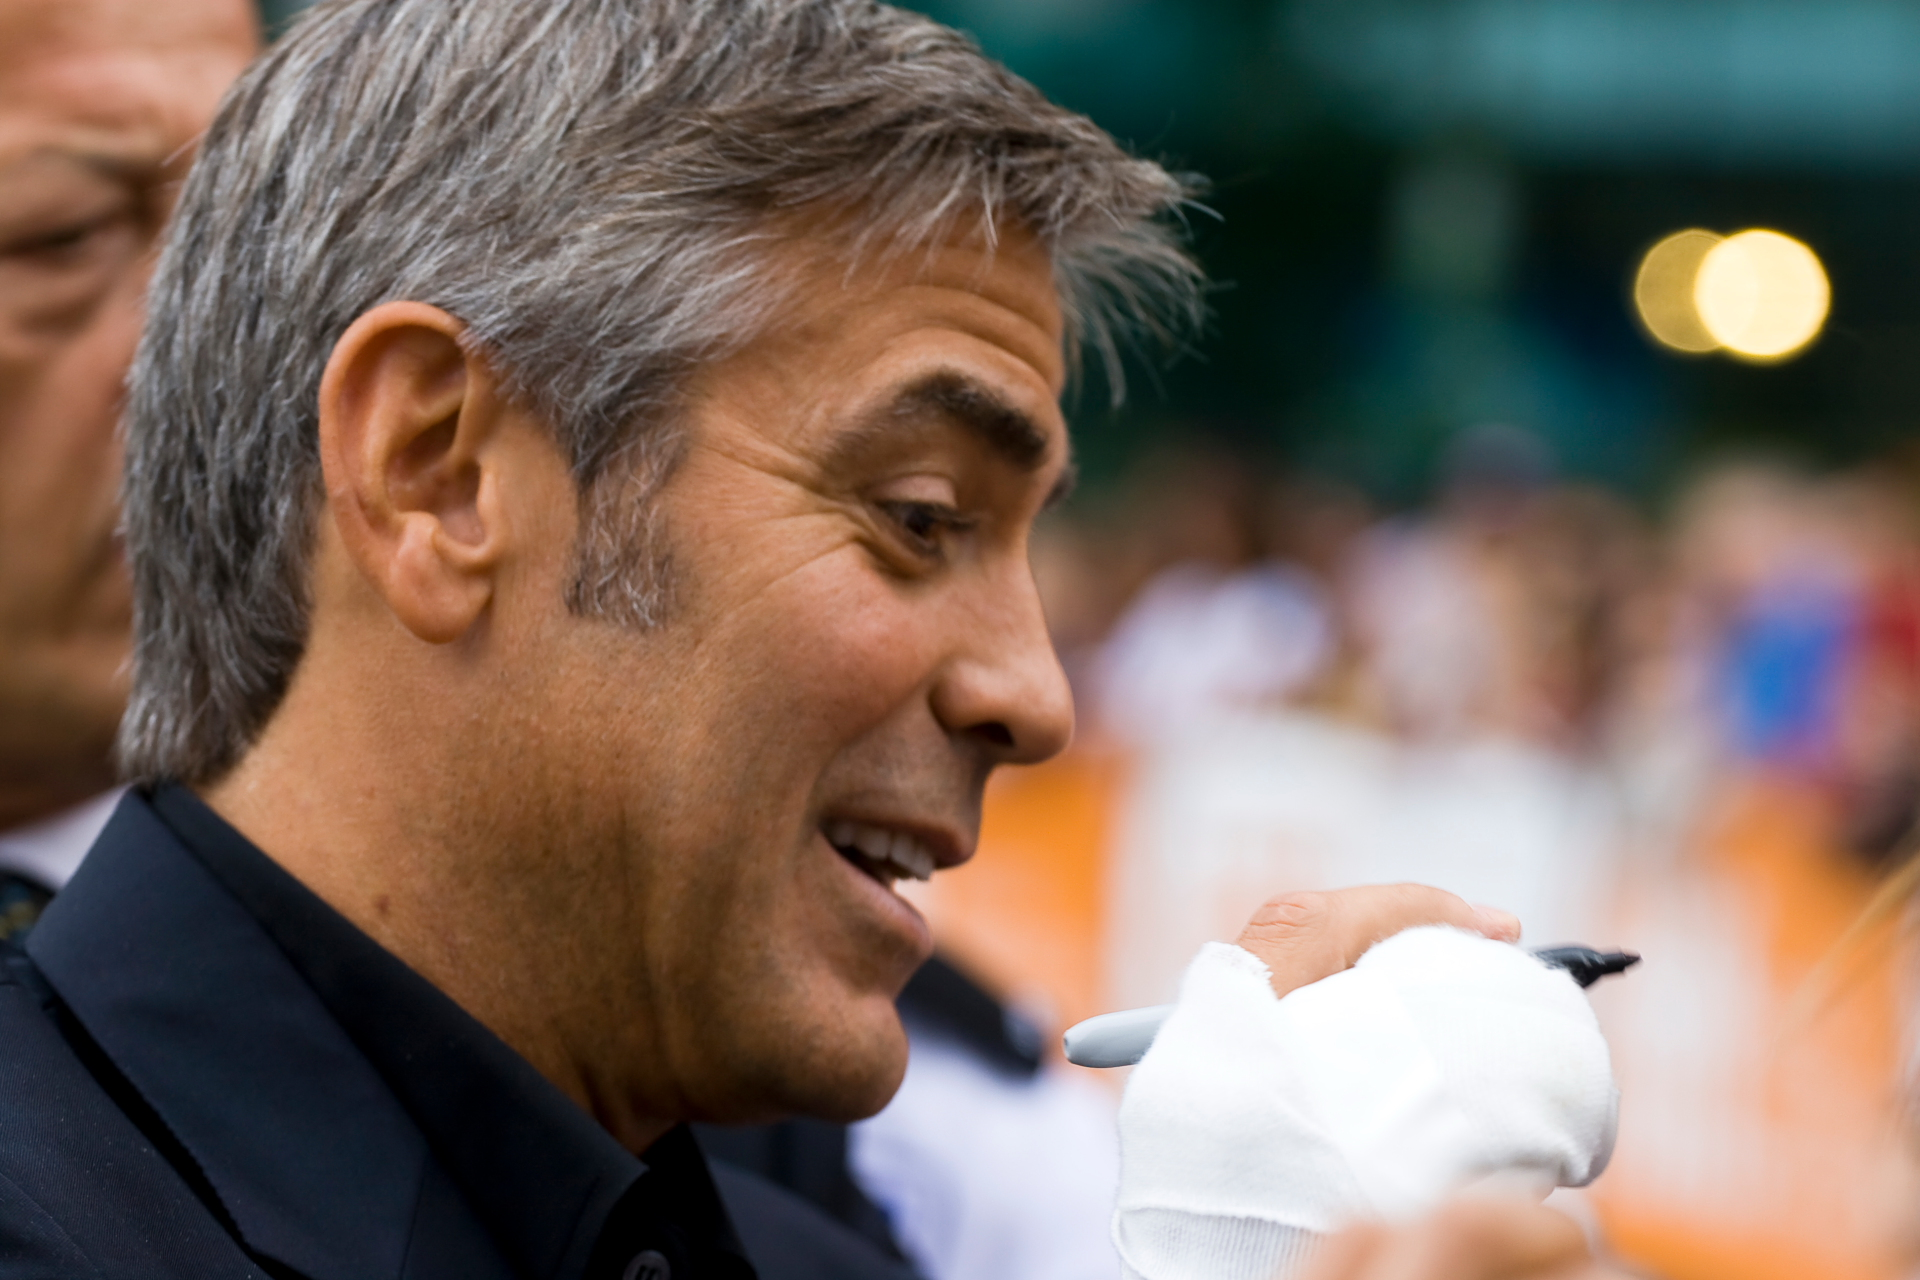 grey hair styles george clooney entertaining his admirers flickr photo 8226